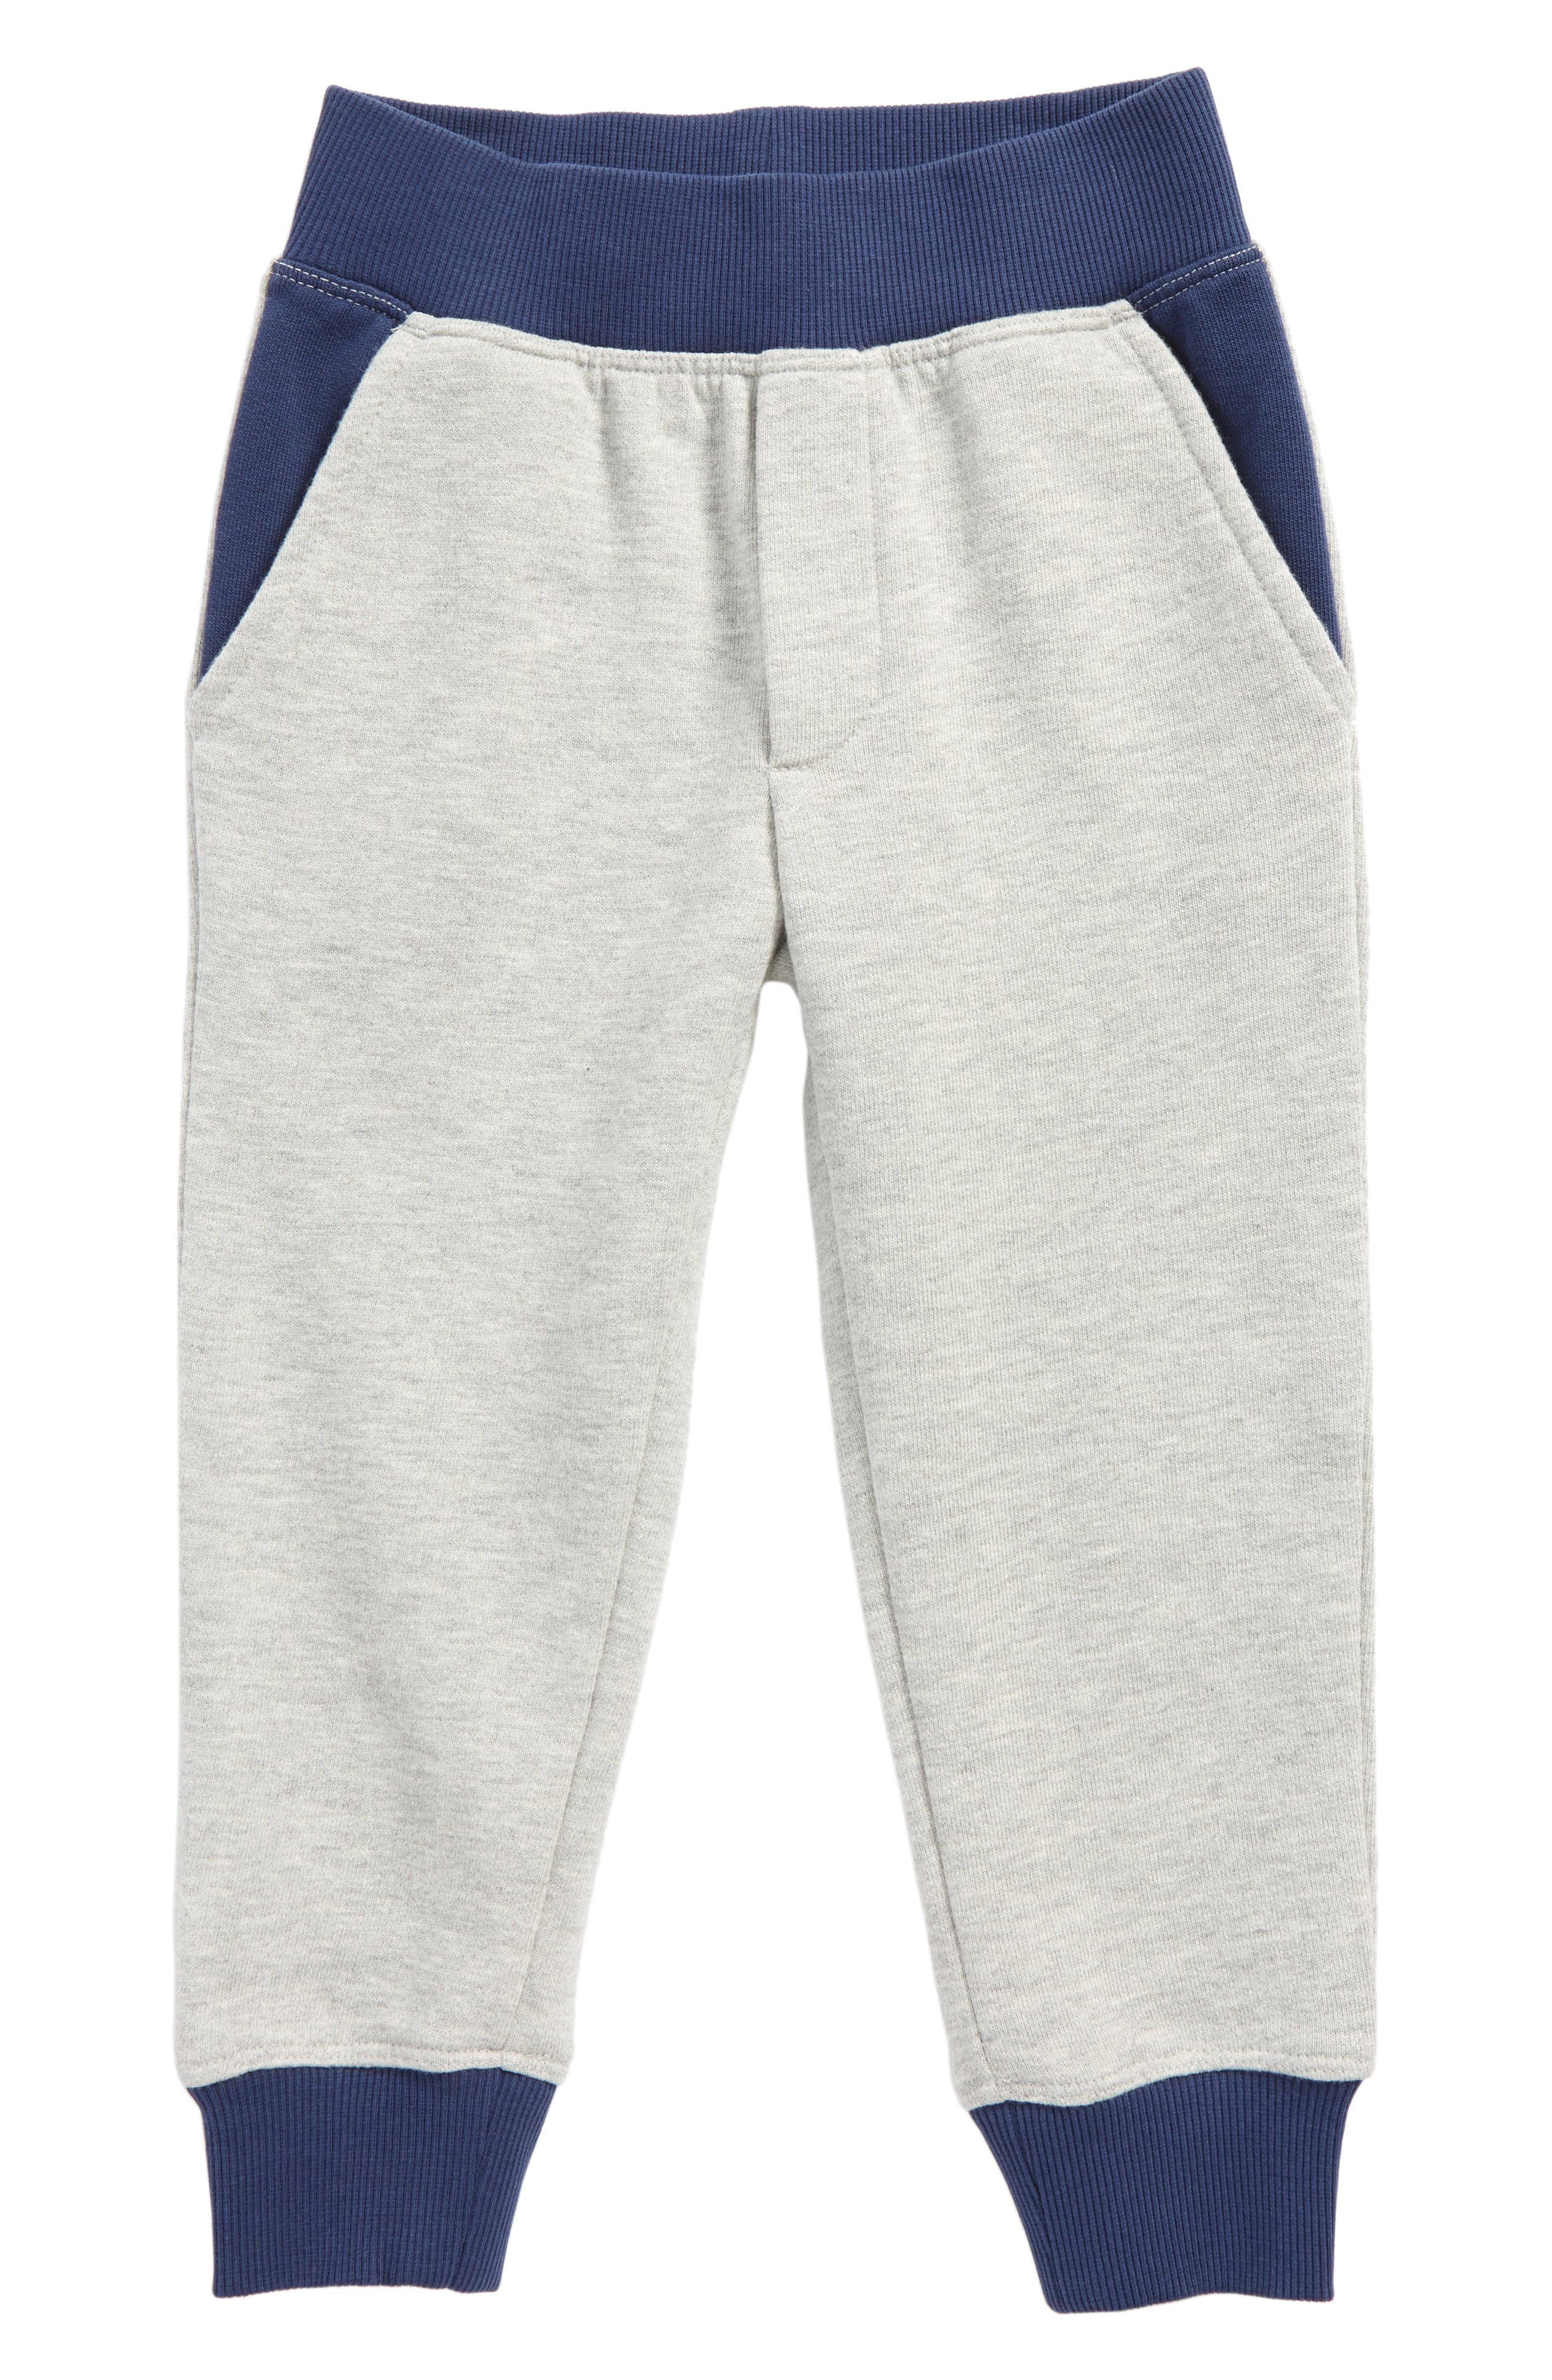 Colorblock Jogger Pants,                         Main,                         color, 031